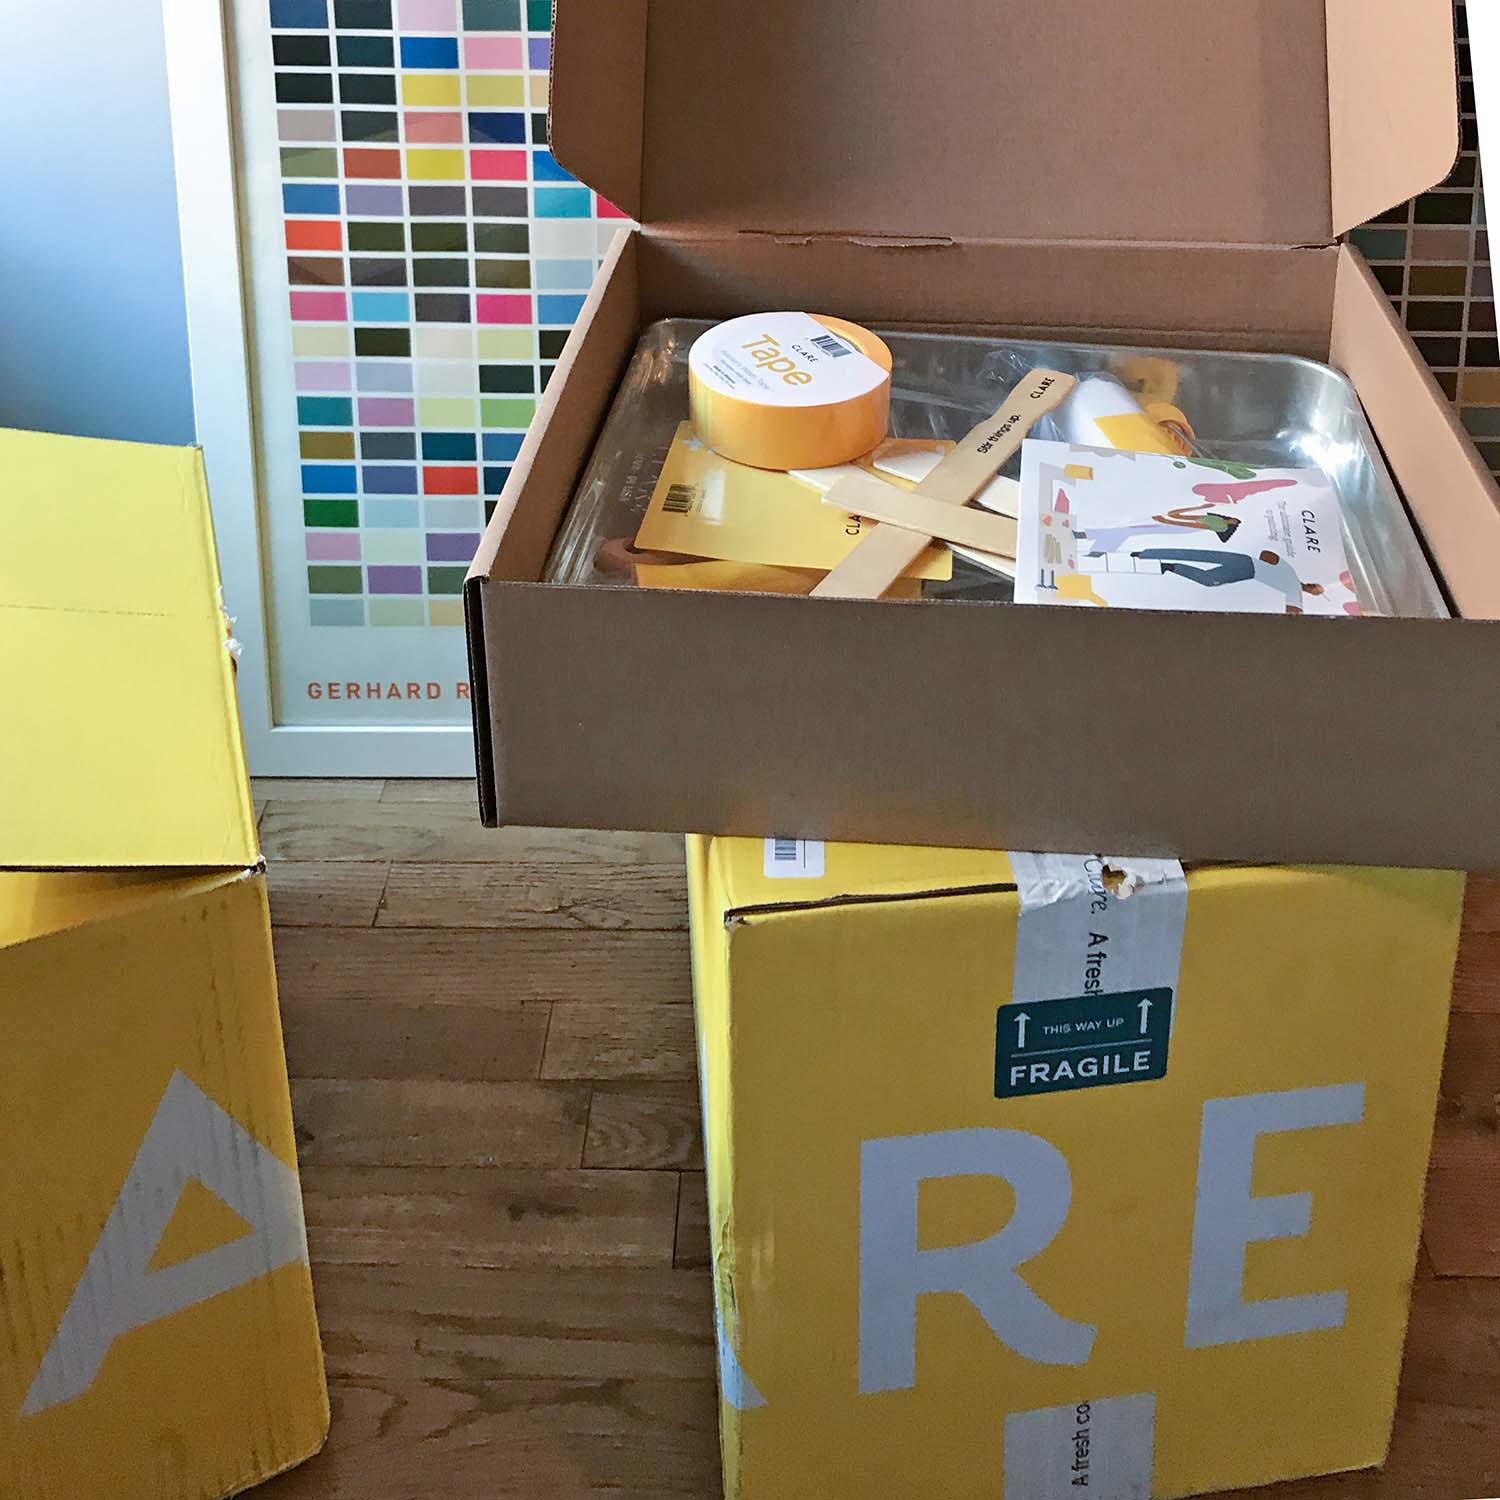 This city dweller had high-quality paint and supplies delivered straight to her door! Check out the 5 lessons she learned from painting her apartment for the first time.